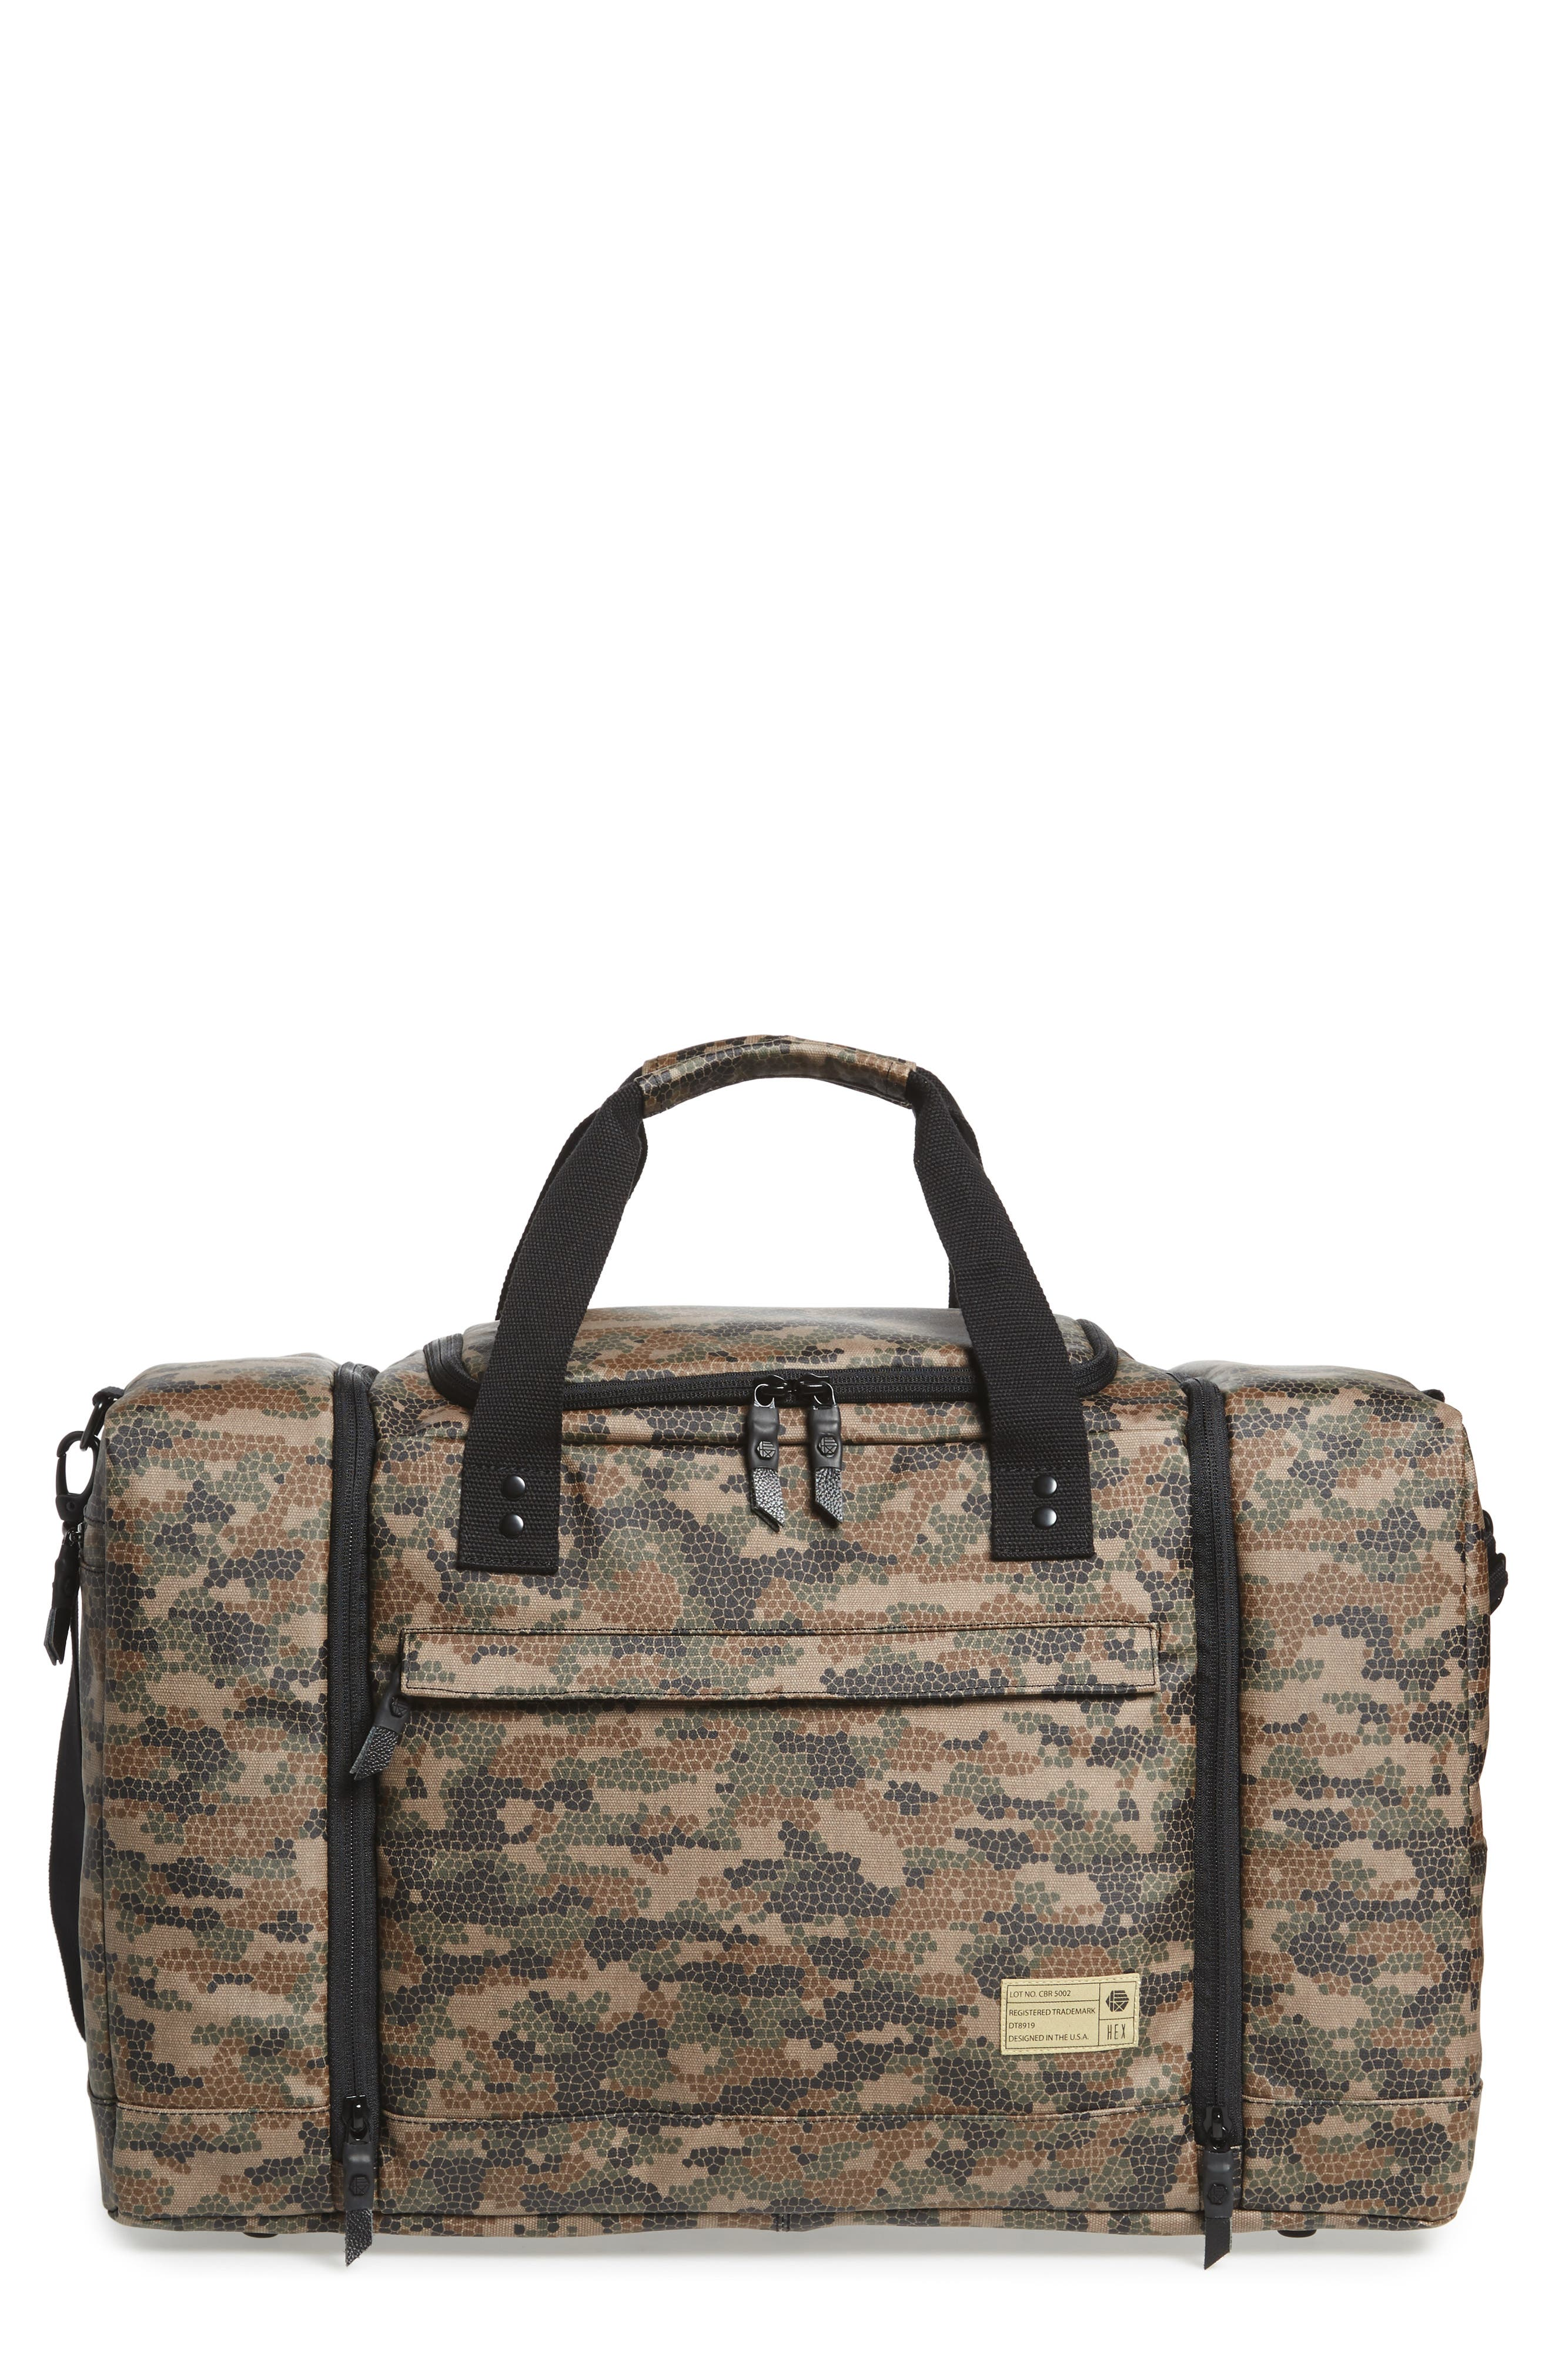 HEX 'Calibre' Sneaker Duffel Bag